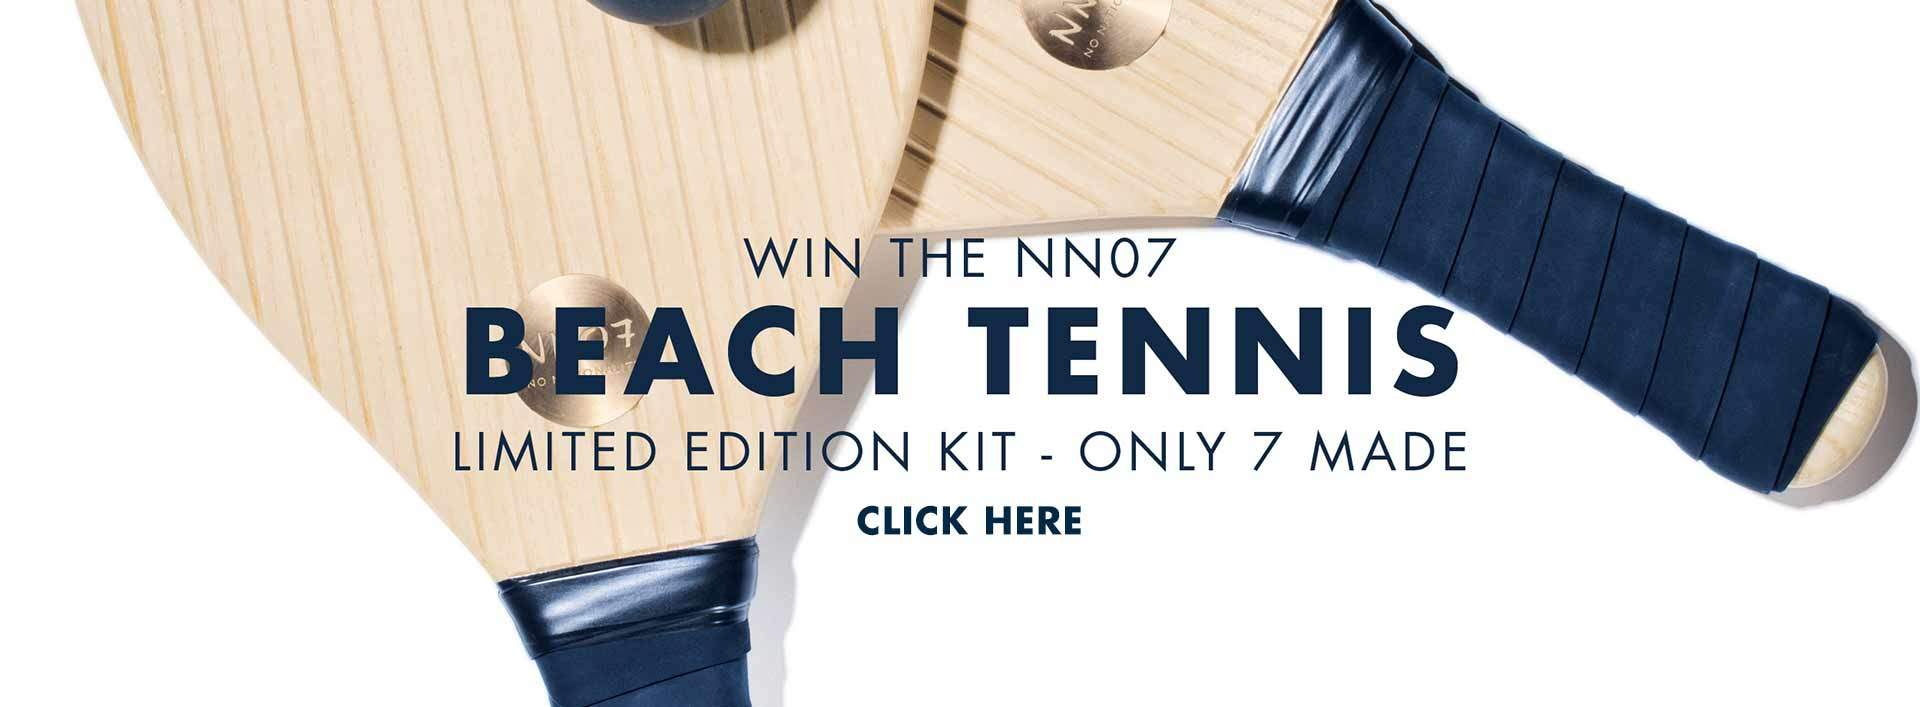 Beach Tennis Kit